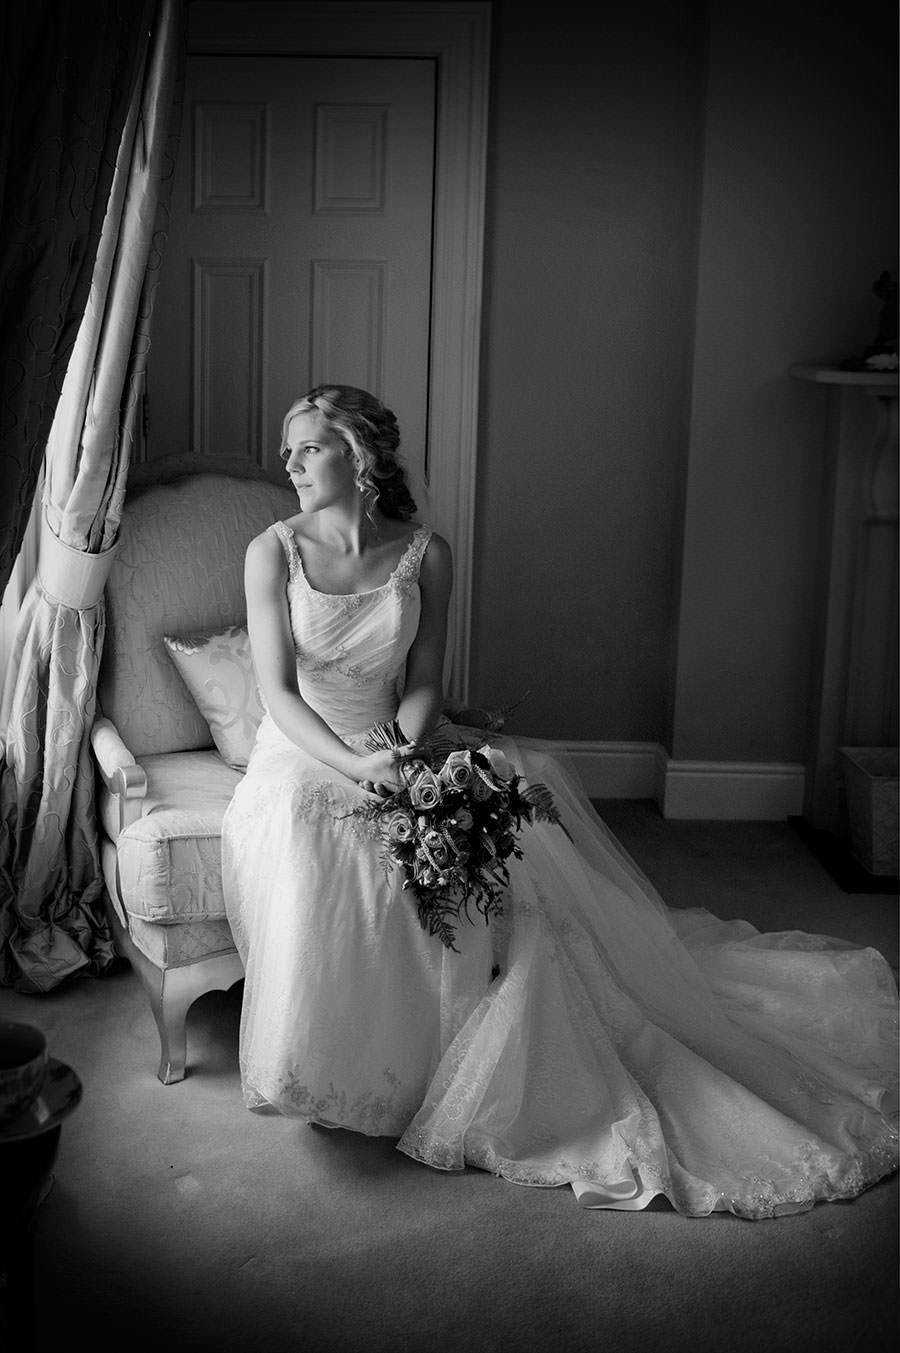 Rosie & Jam's wedding preview - Ballymagarvey Village, Co Meath 4